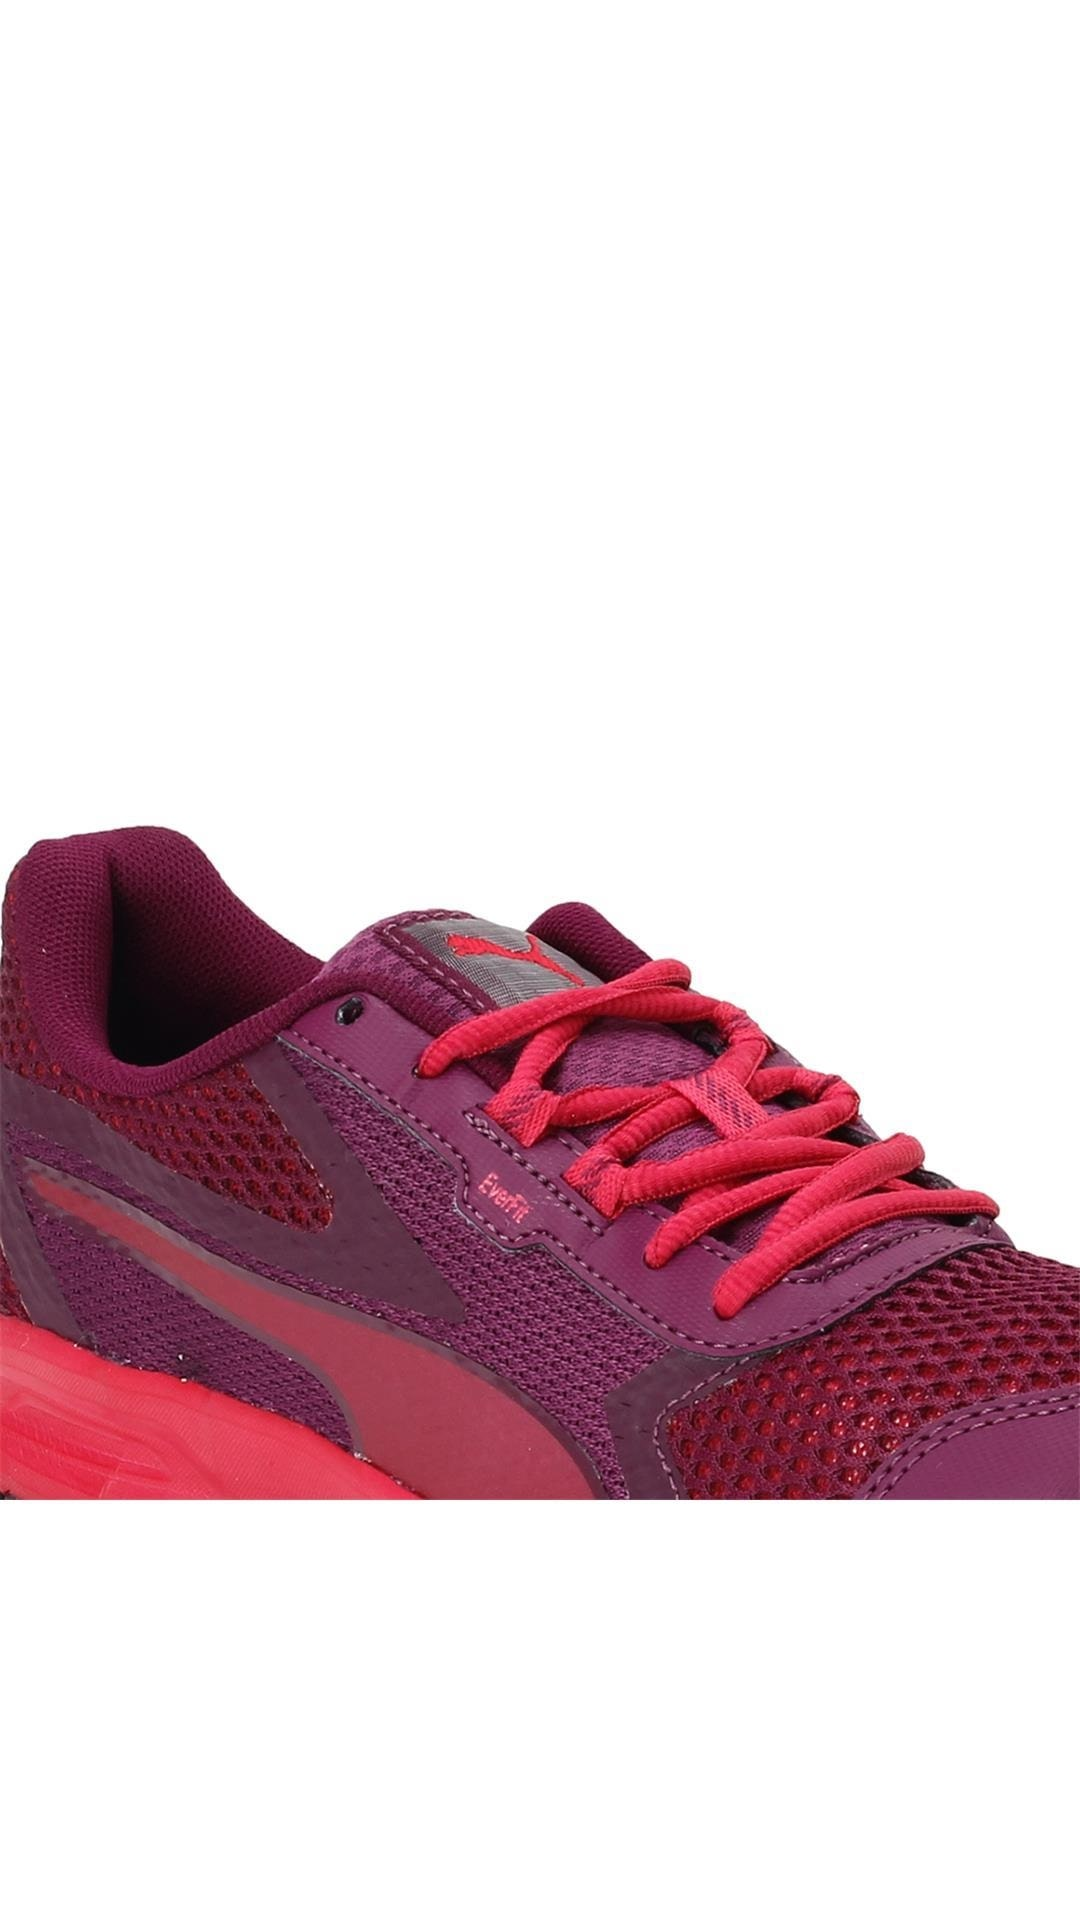 ebcaba3b29e0 Buy Puma Women s Essential Runner Wn s IDP Purple Running Shoes Online at  Low Prices in India - Paytmmall.com